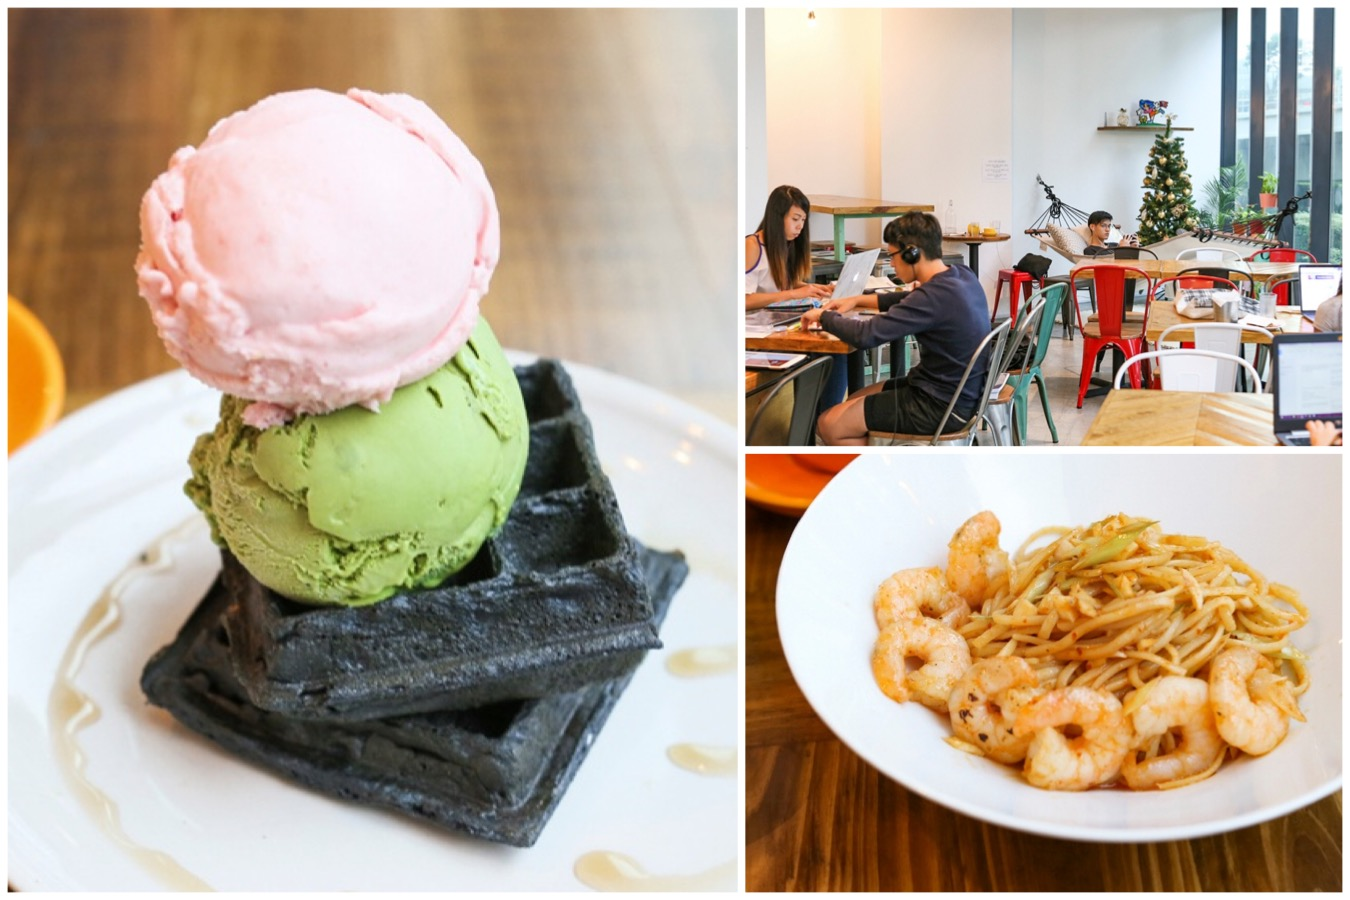 Kindred Folk is a cosy two storey cafe serving up unique handcrafted ice creams, other desserts and interesting fusion pastas. They are all about ice creams and aim to consistently come up with new and exciting flavours.